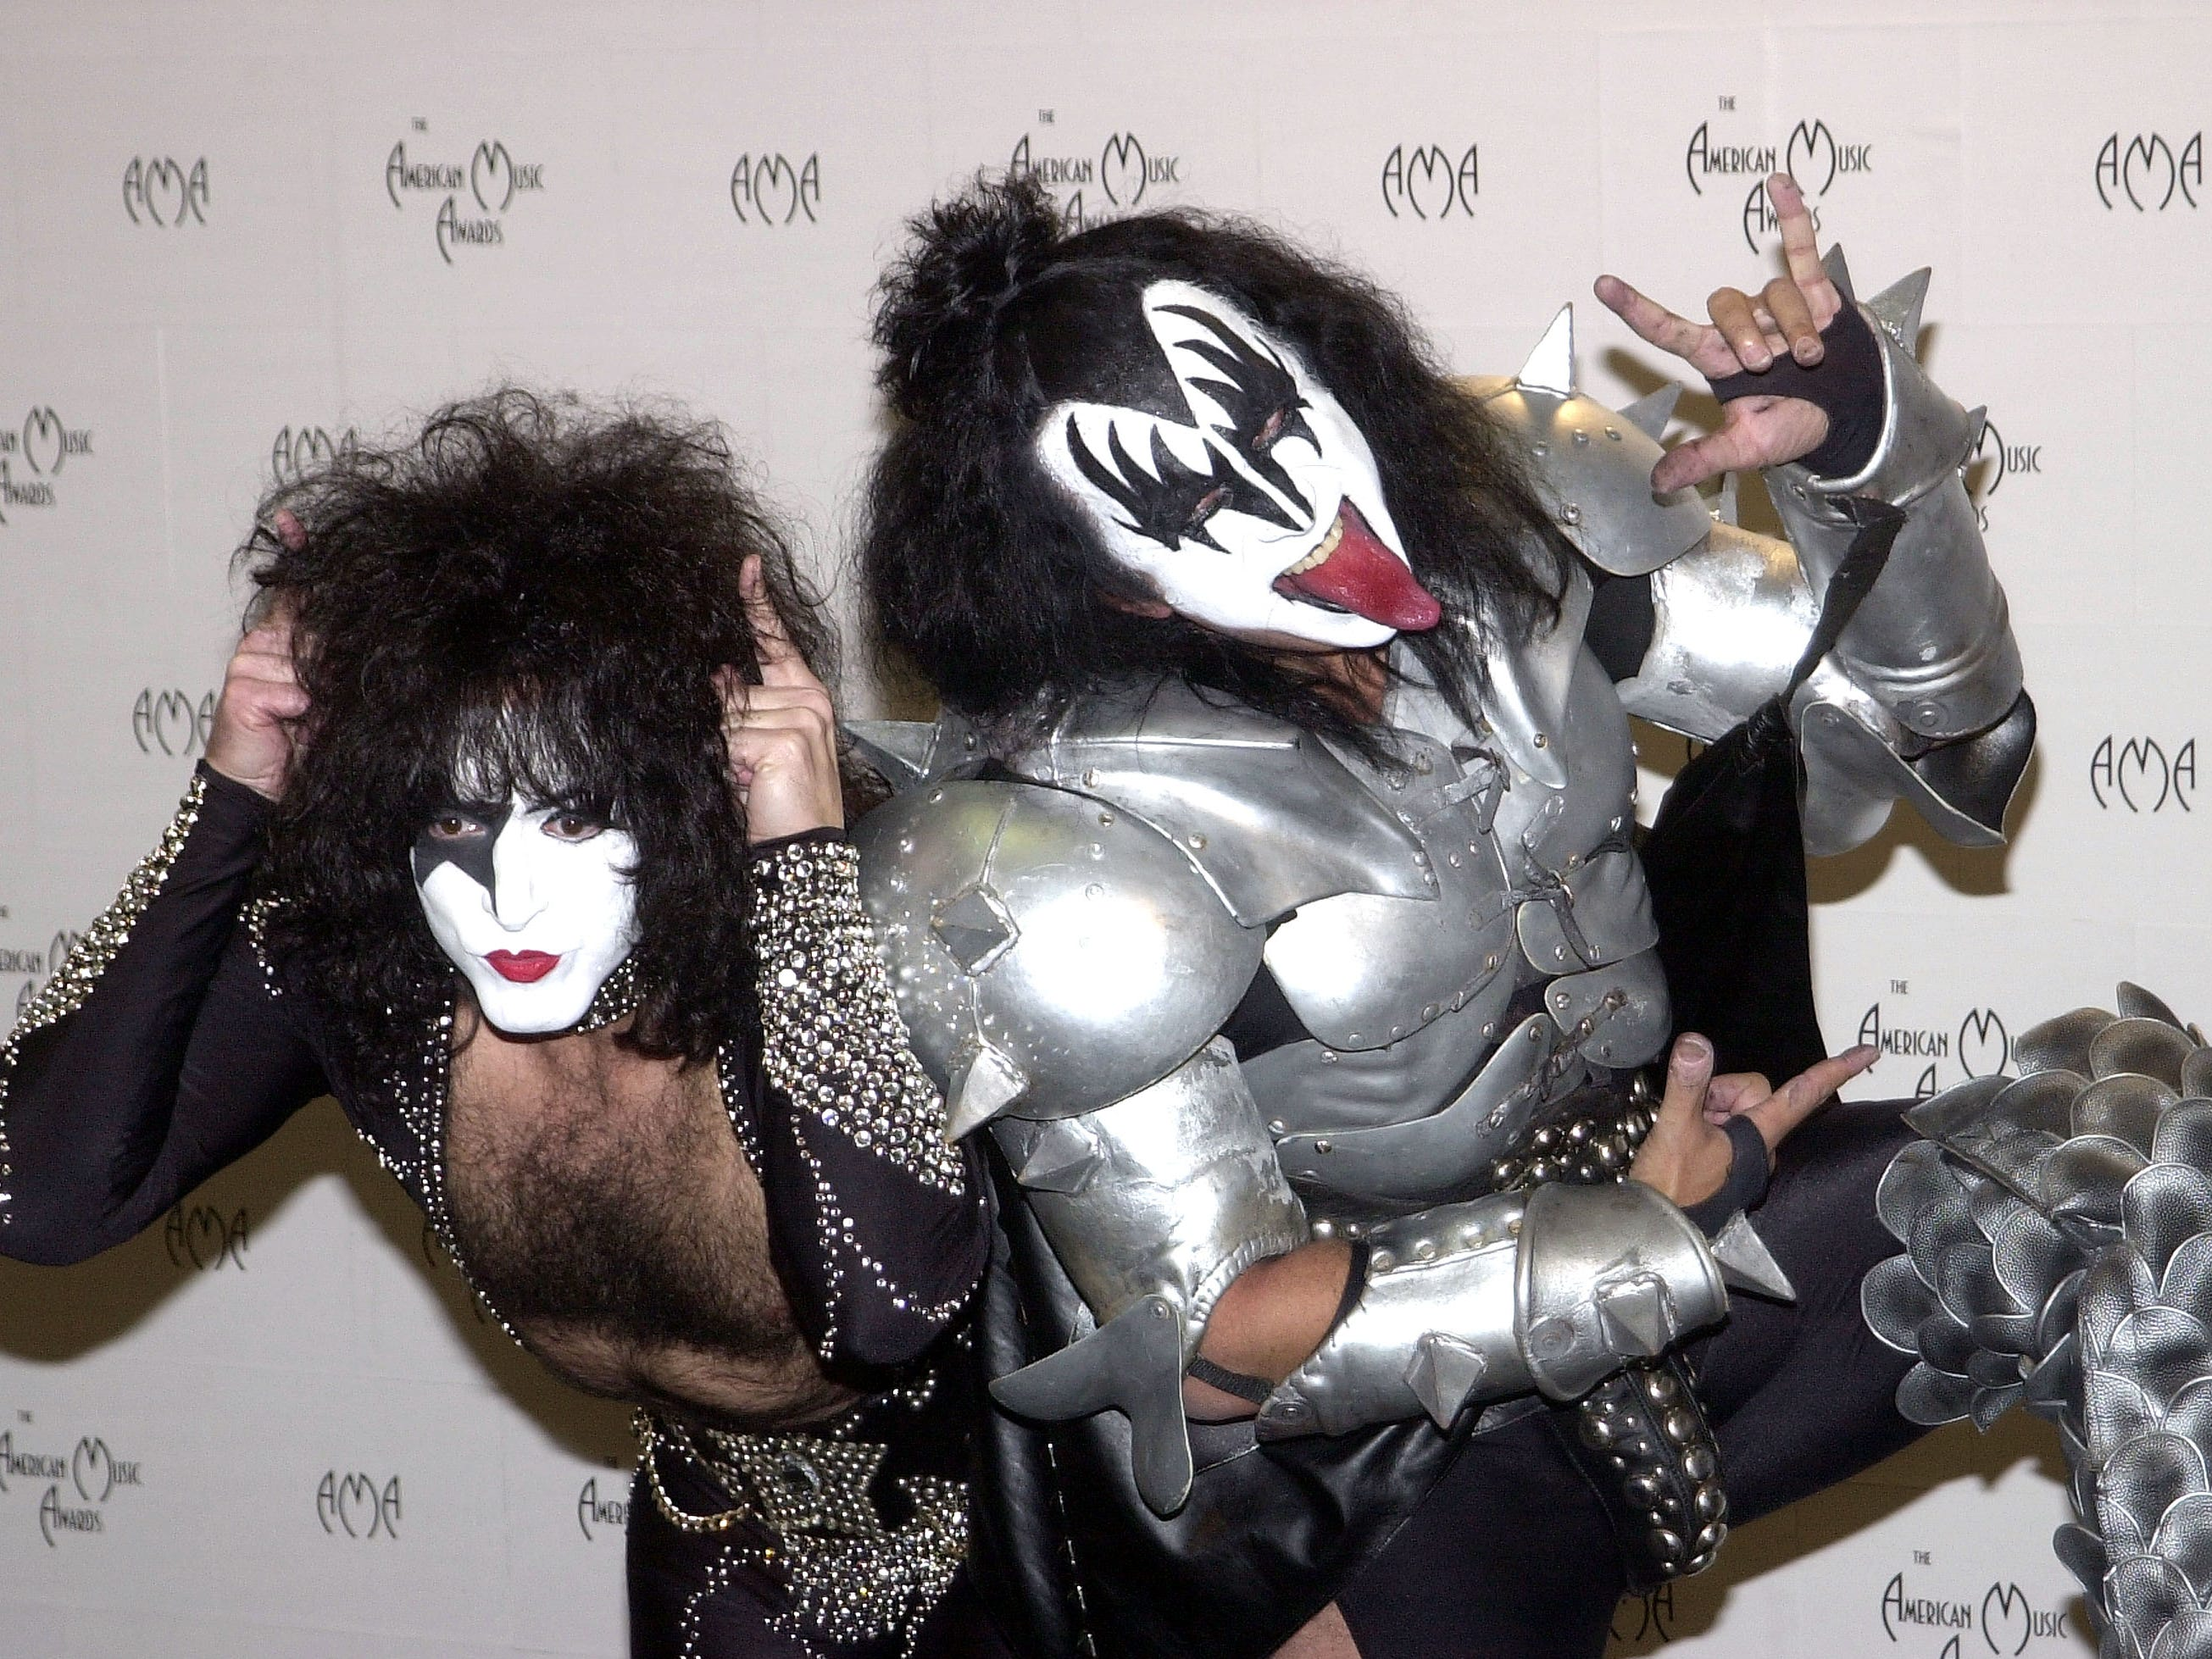 Musicians Paul Stanley and Gene Simmons of Kiss pose backstage during the 29th Annual American Music Awards at the Shrine Auditorium on Jan. 9, 2002 in Los Angeles, CA.